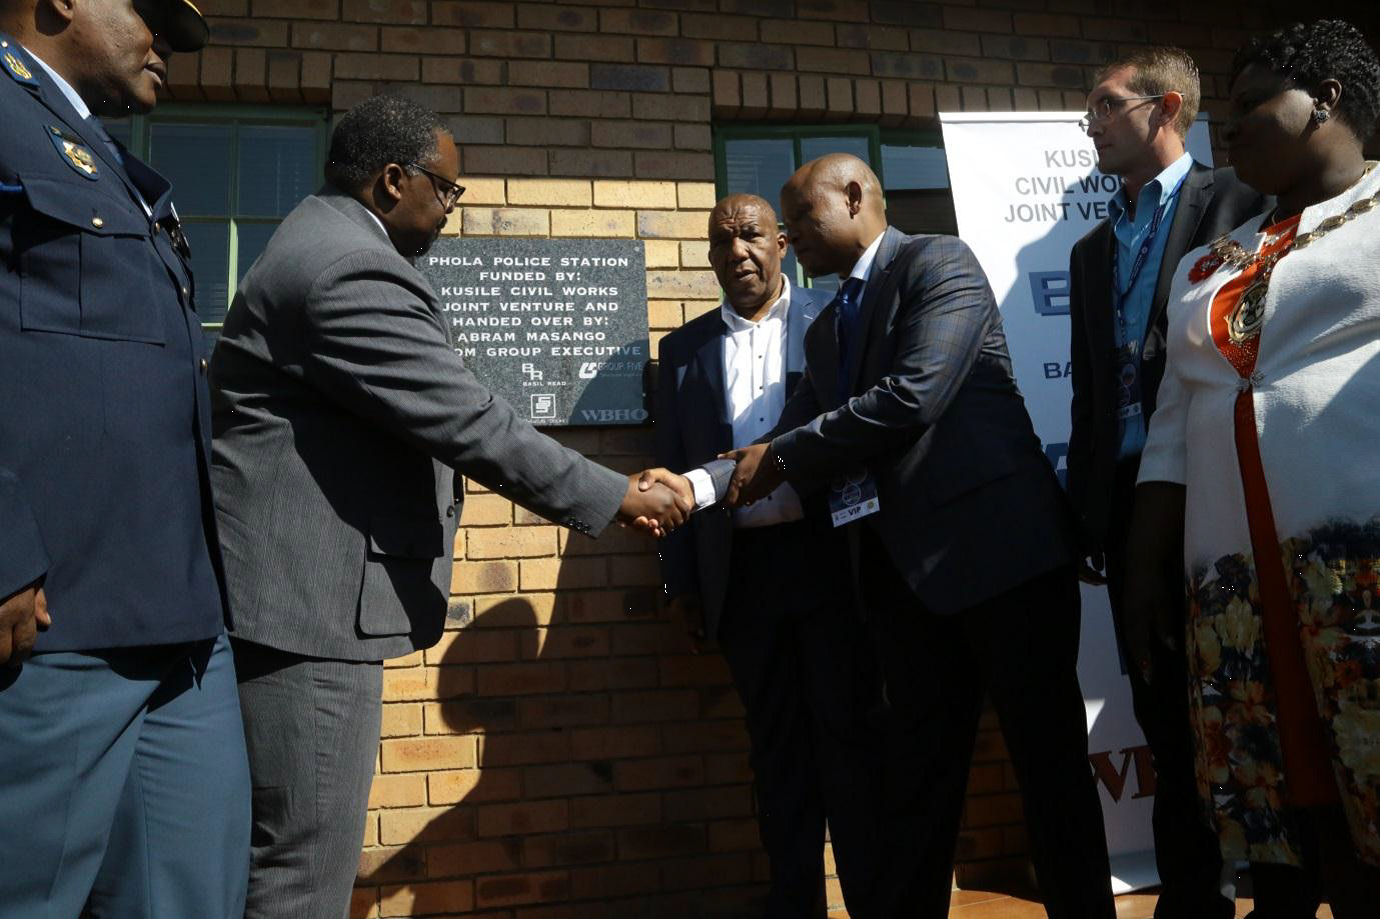 Kusile project gives police station to community under